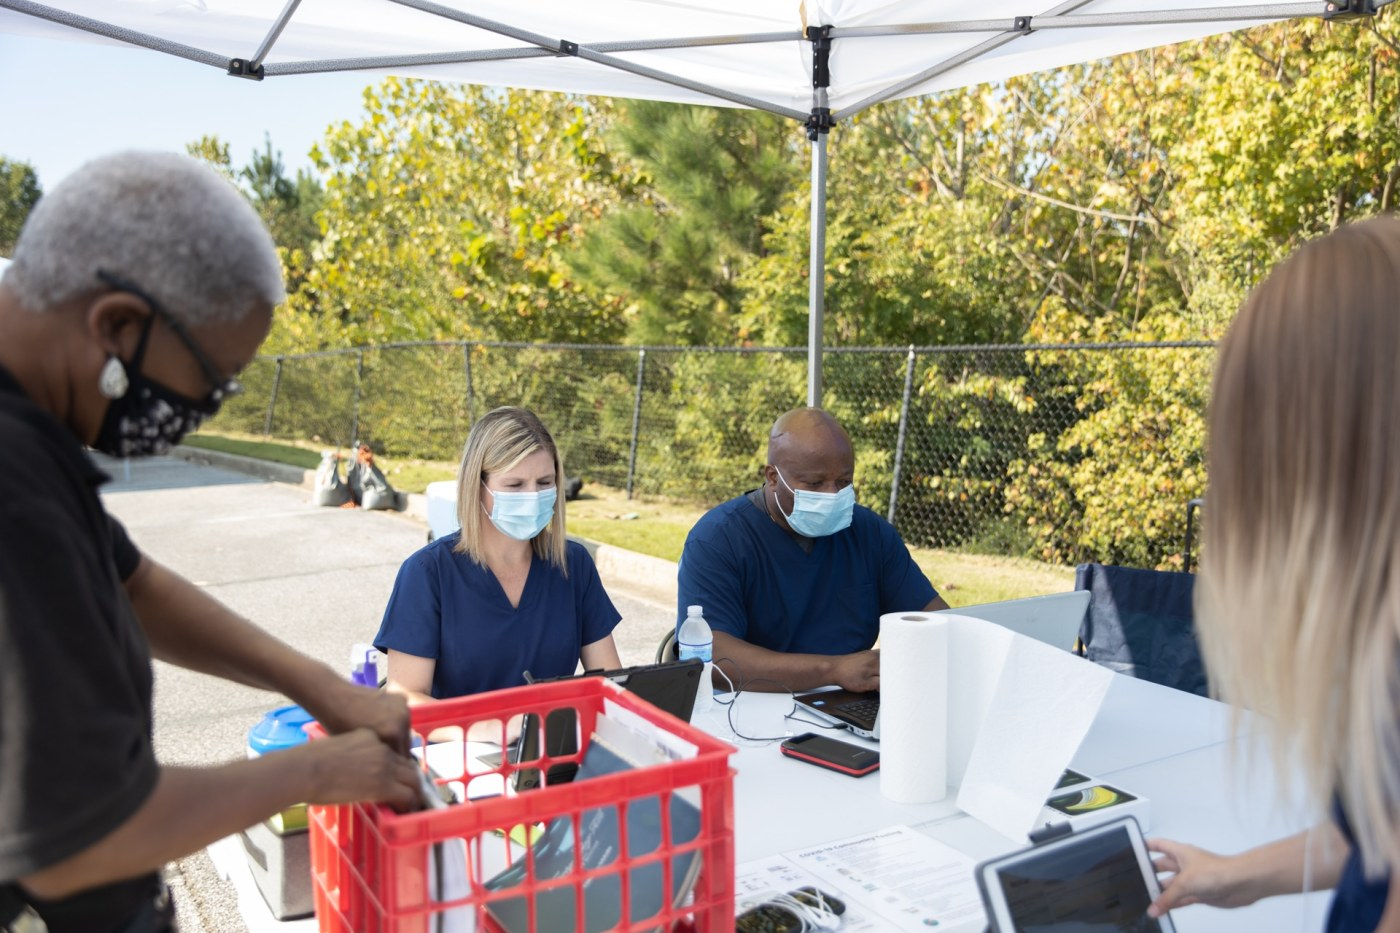 Health professionals at a community-based testing center in Birmingham